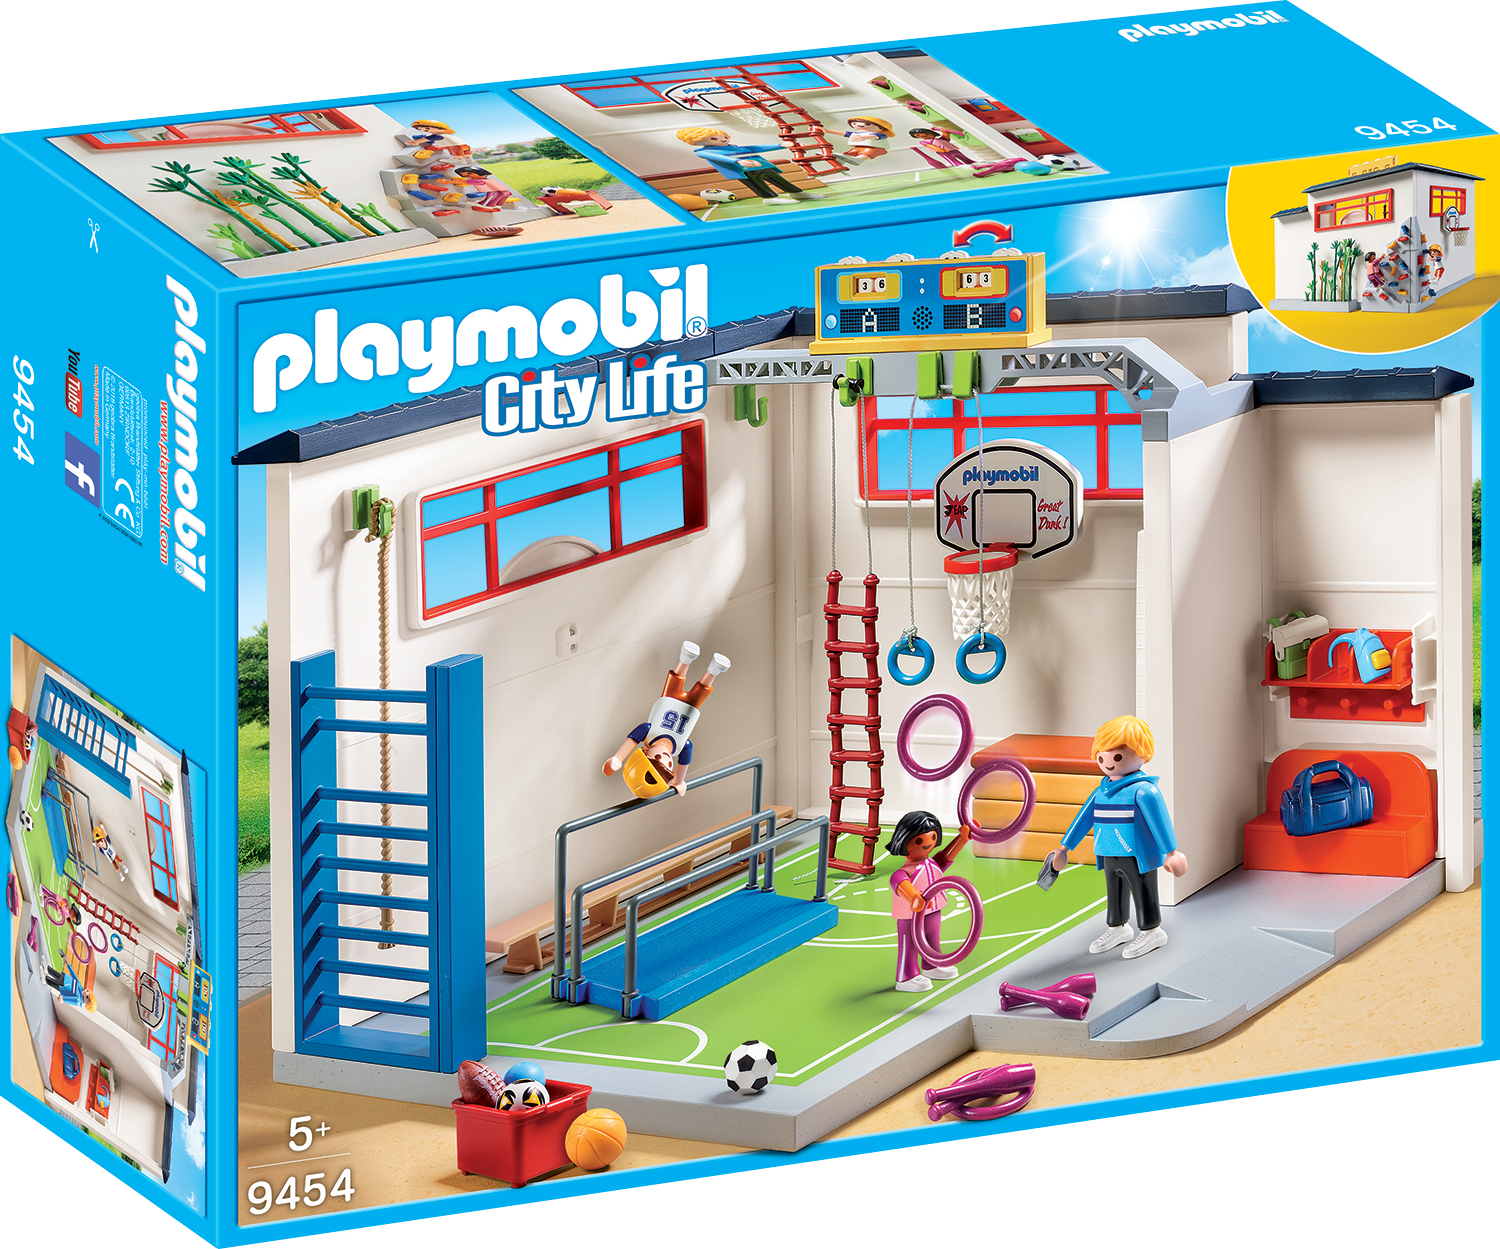 Sala de sport playmobil city life